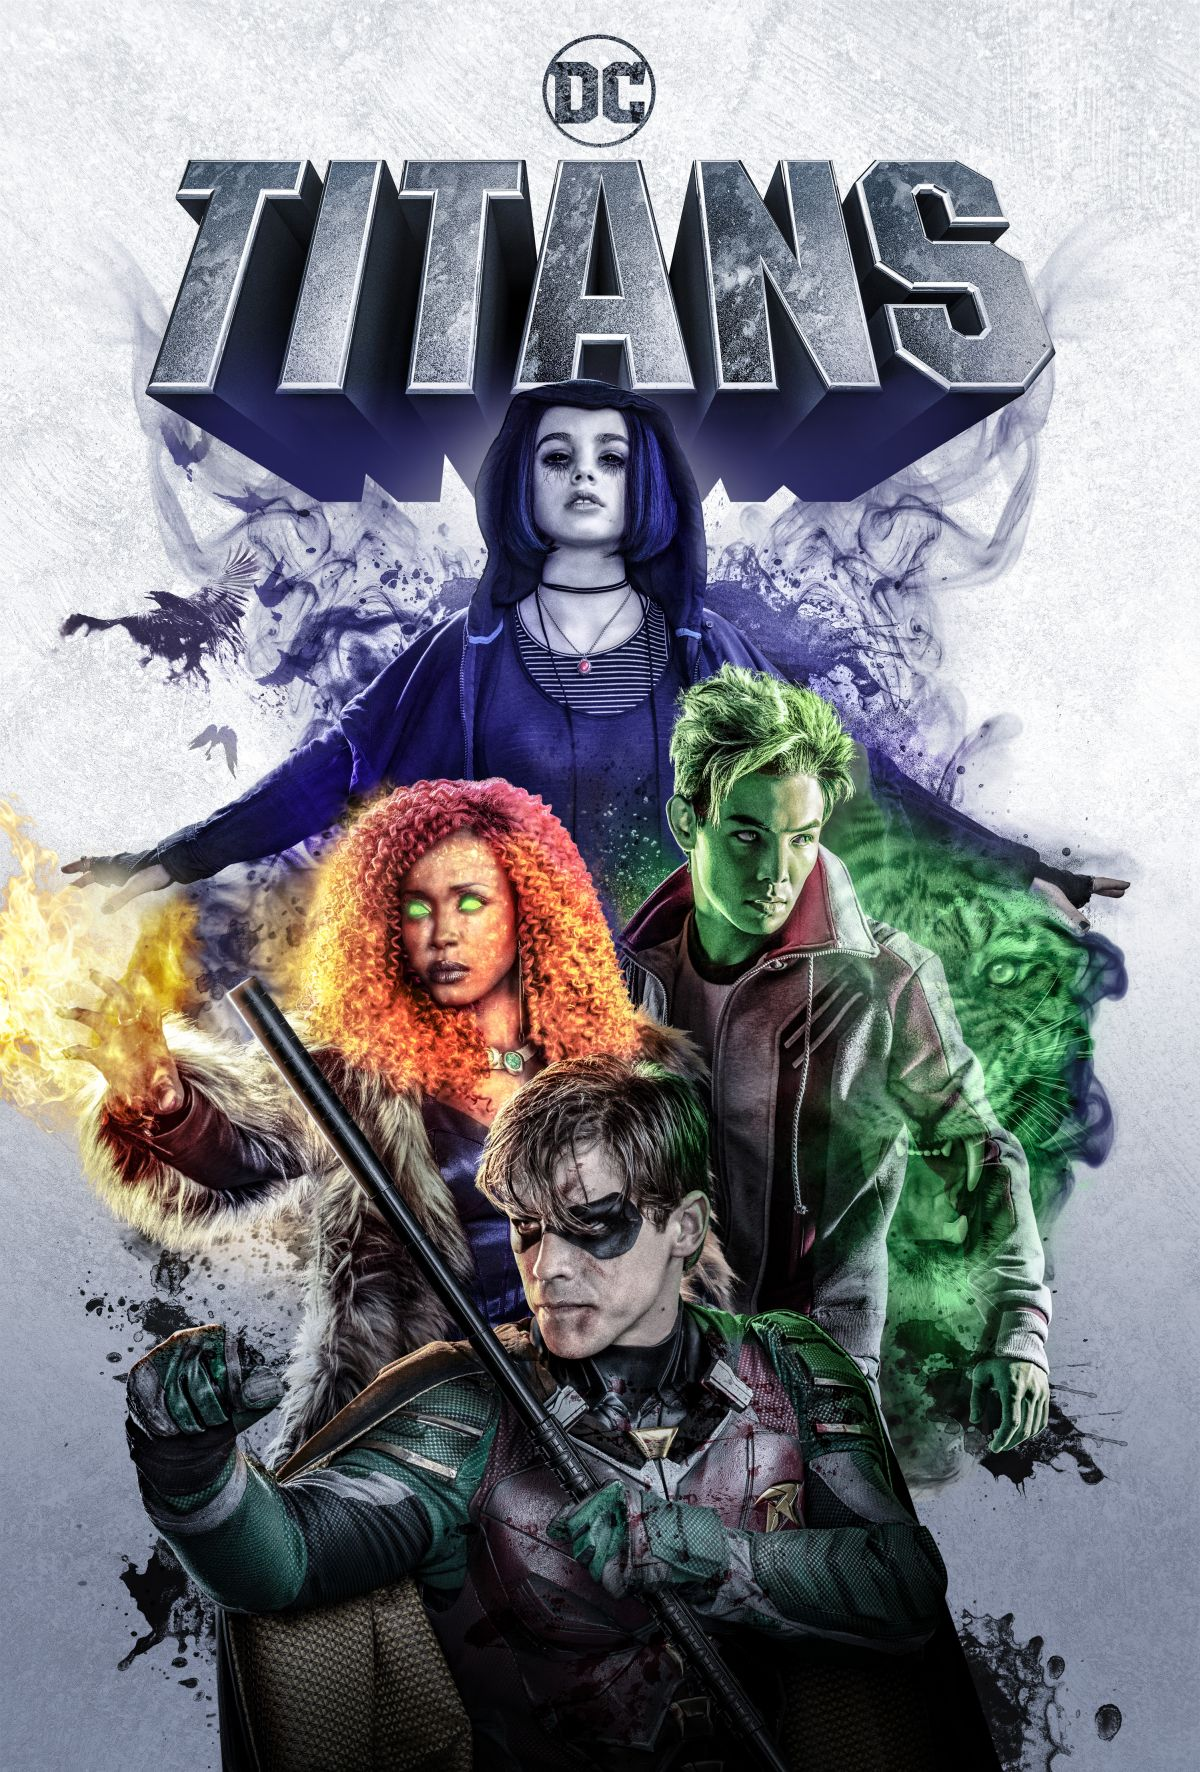 Joshua Orpin Cast As Superboy In Dc S Titans Season 2 Joshua orpin was born on april 15, 1994 in melbourne, australia. joshua orpin cast as superboy in dc s